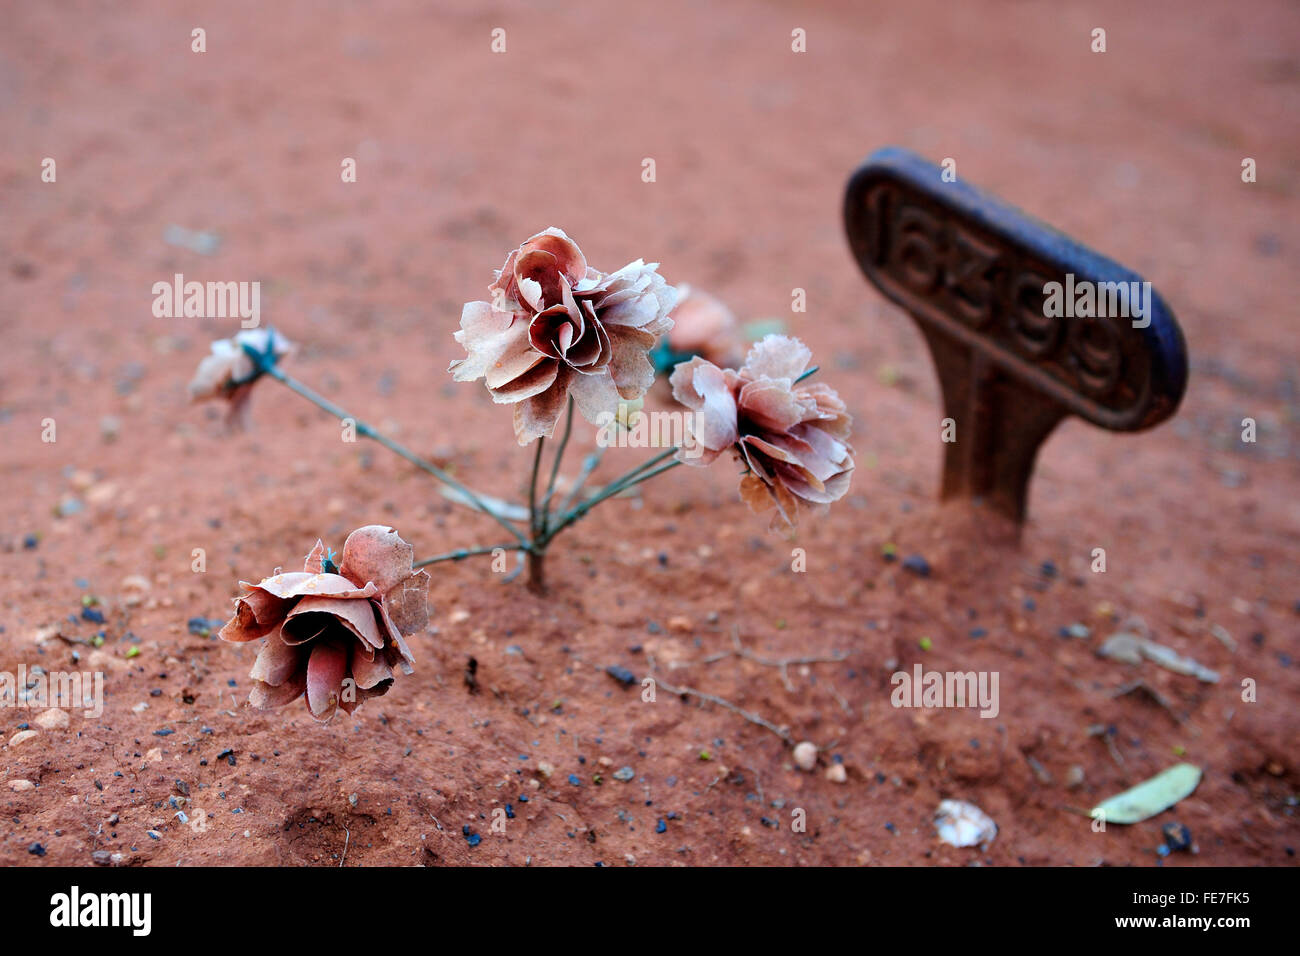 Faded artificial flowers on old, forgotten, un-named child's grave - Stock Image